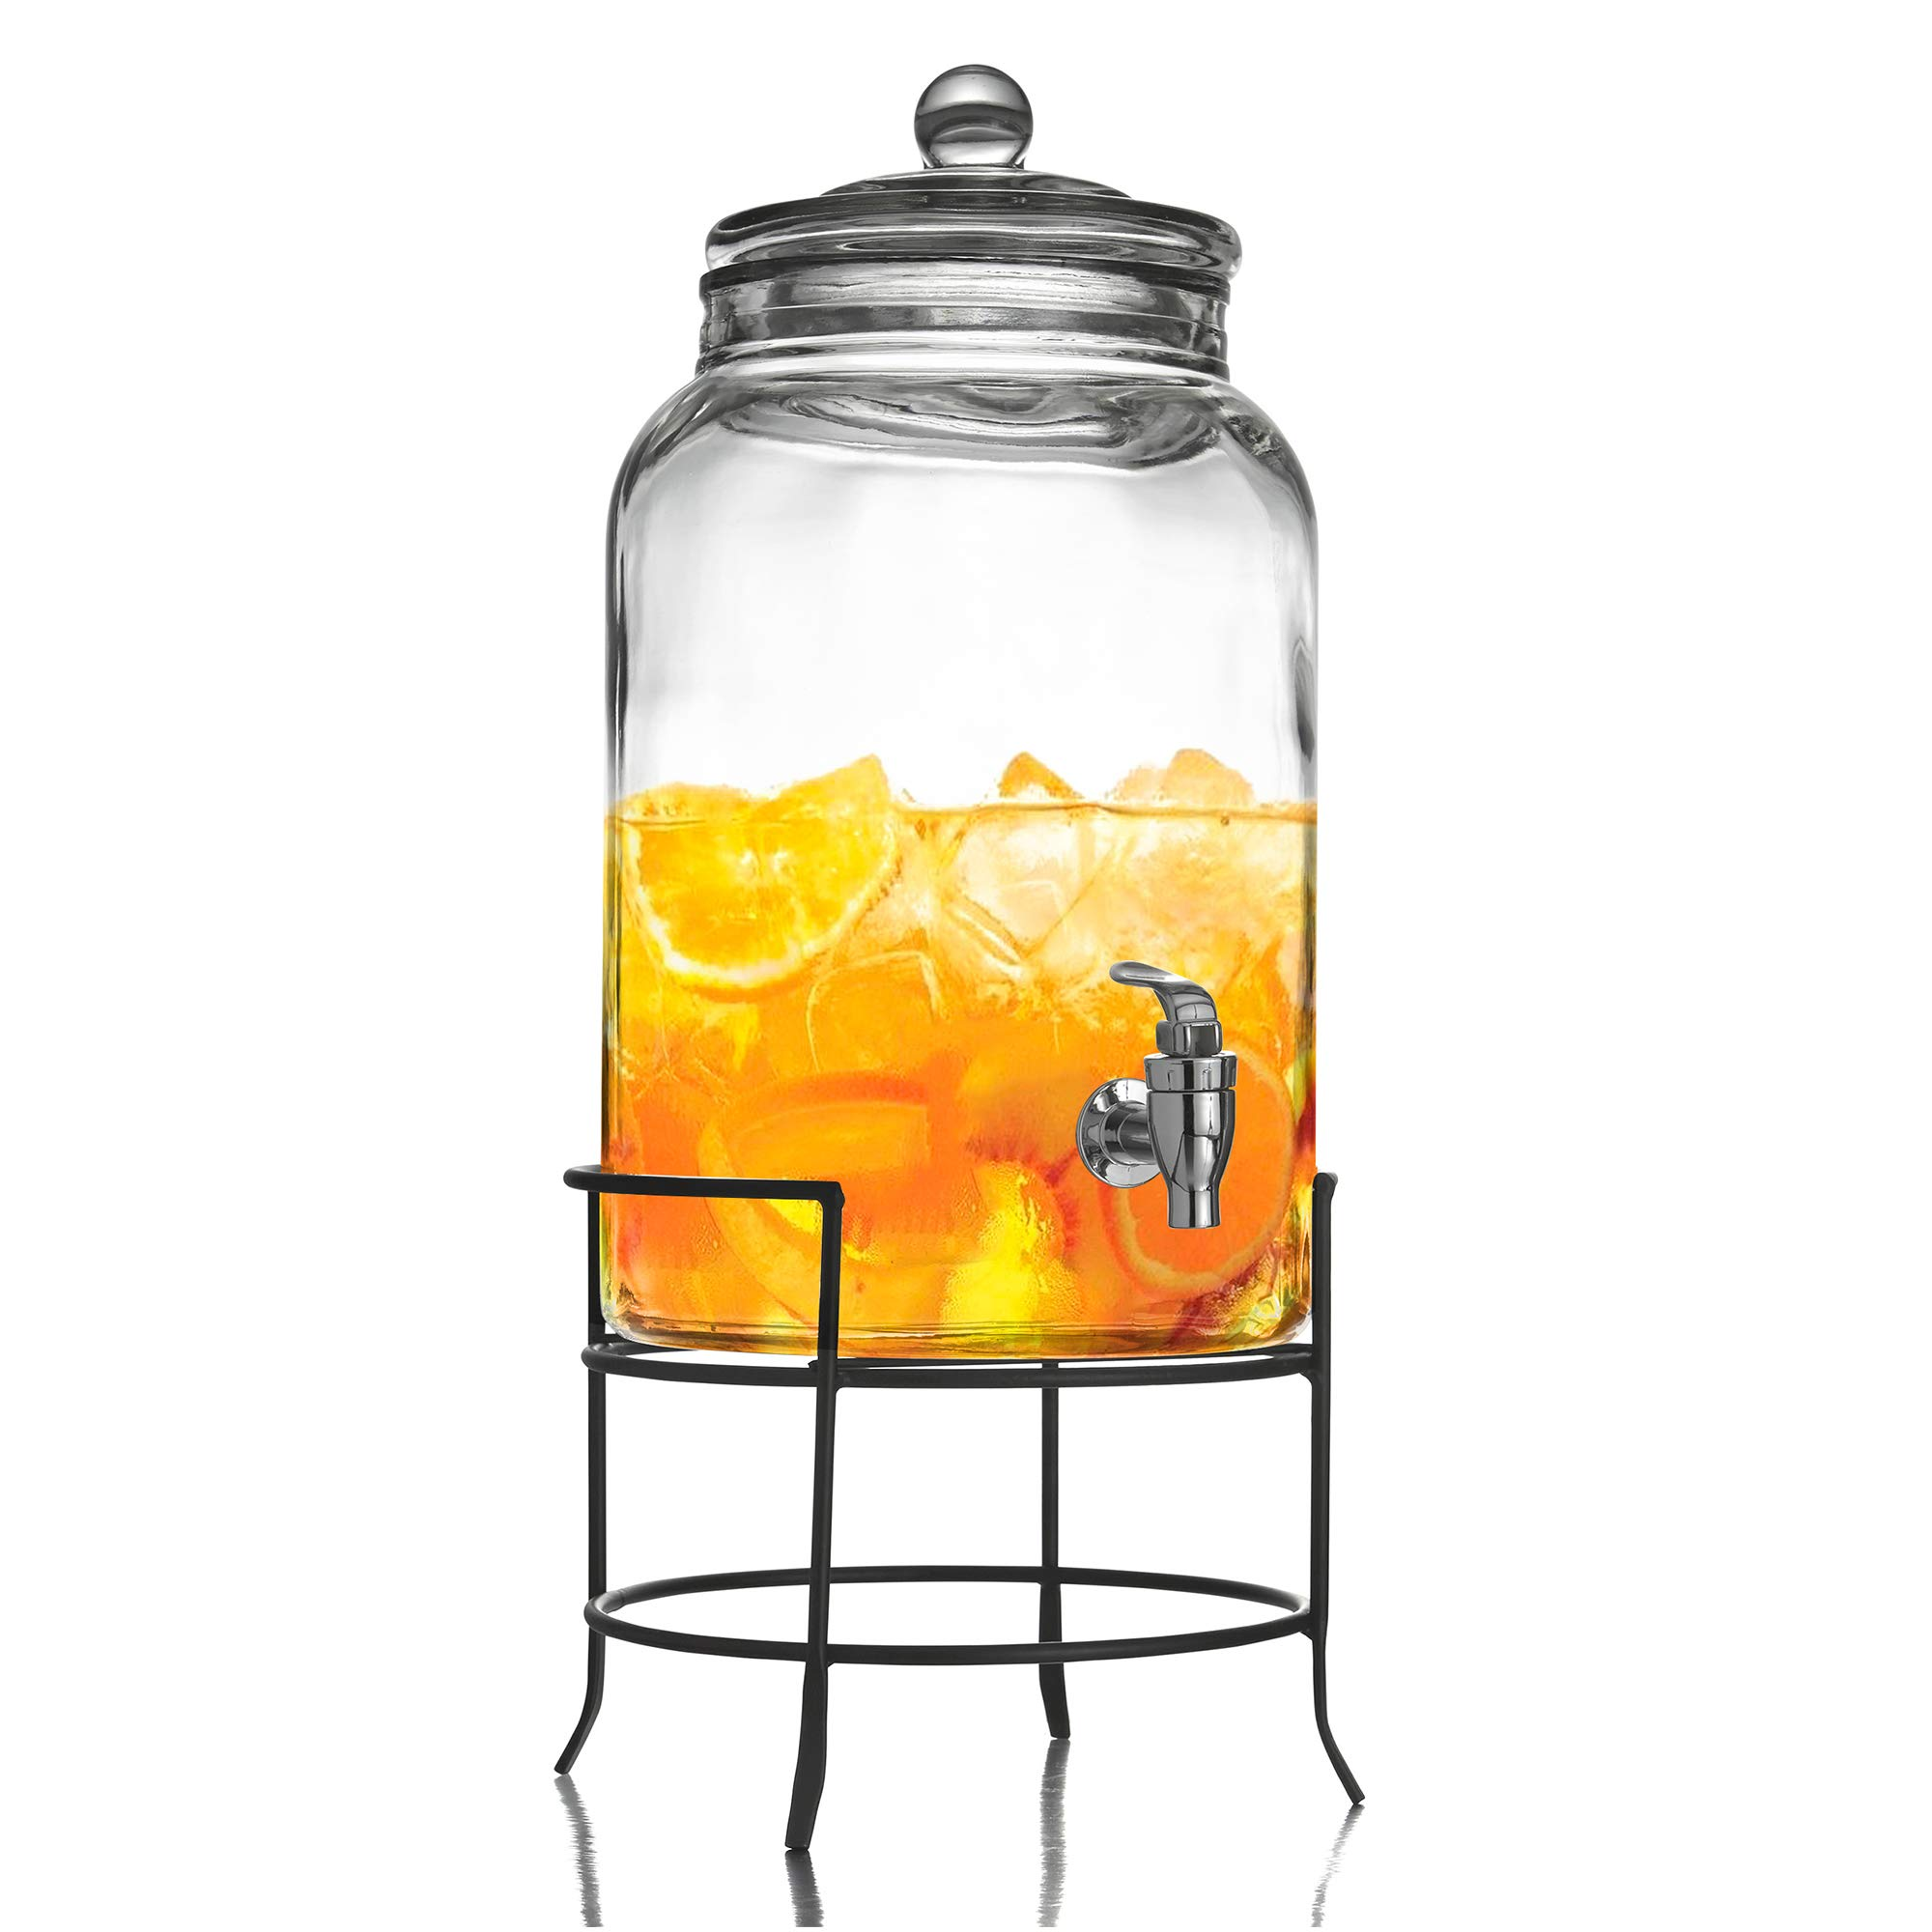 Style Setter Beverage Dispenser Cold Drink Dispenser w/ 2.75-Gallon Capacity Glass Jug, Metal Stand & Leak-Proof Acrylic Spigot Great for Parties, Weddings & More